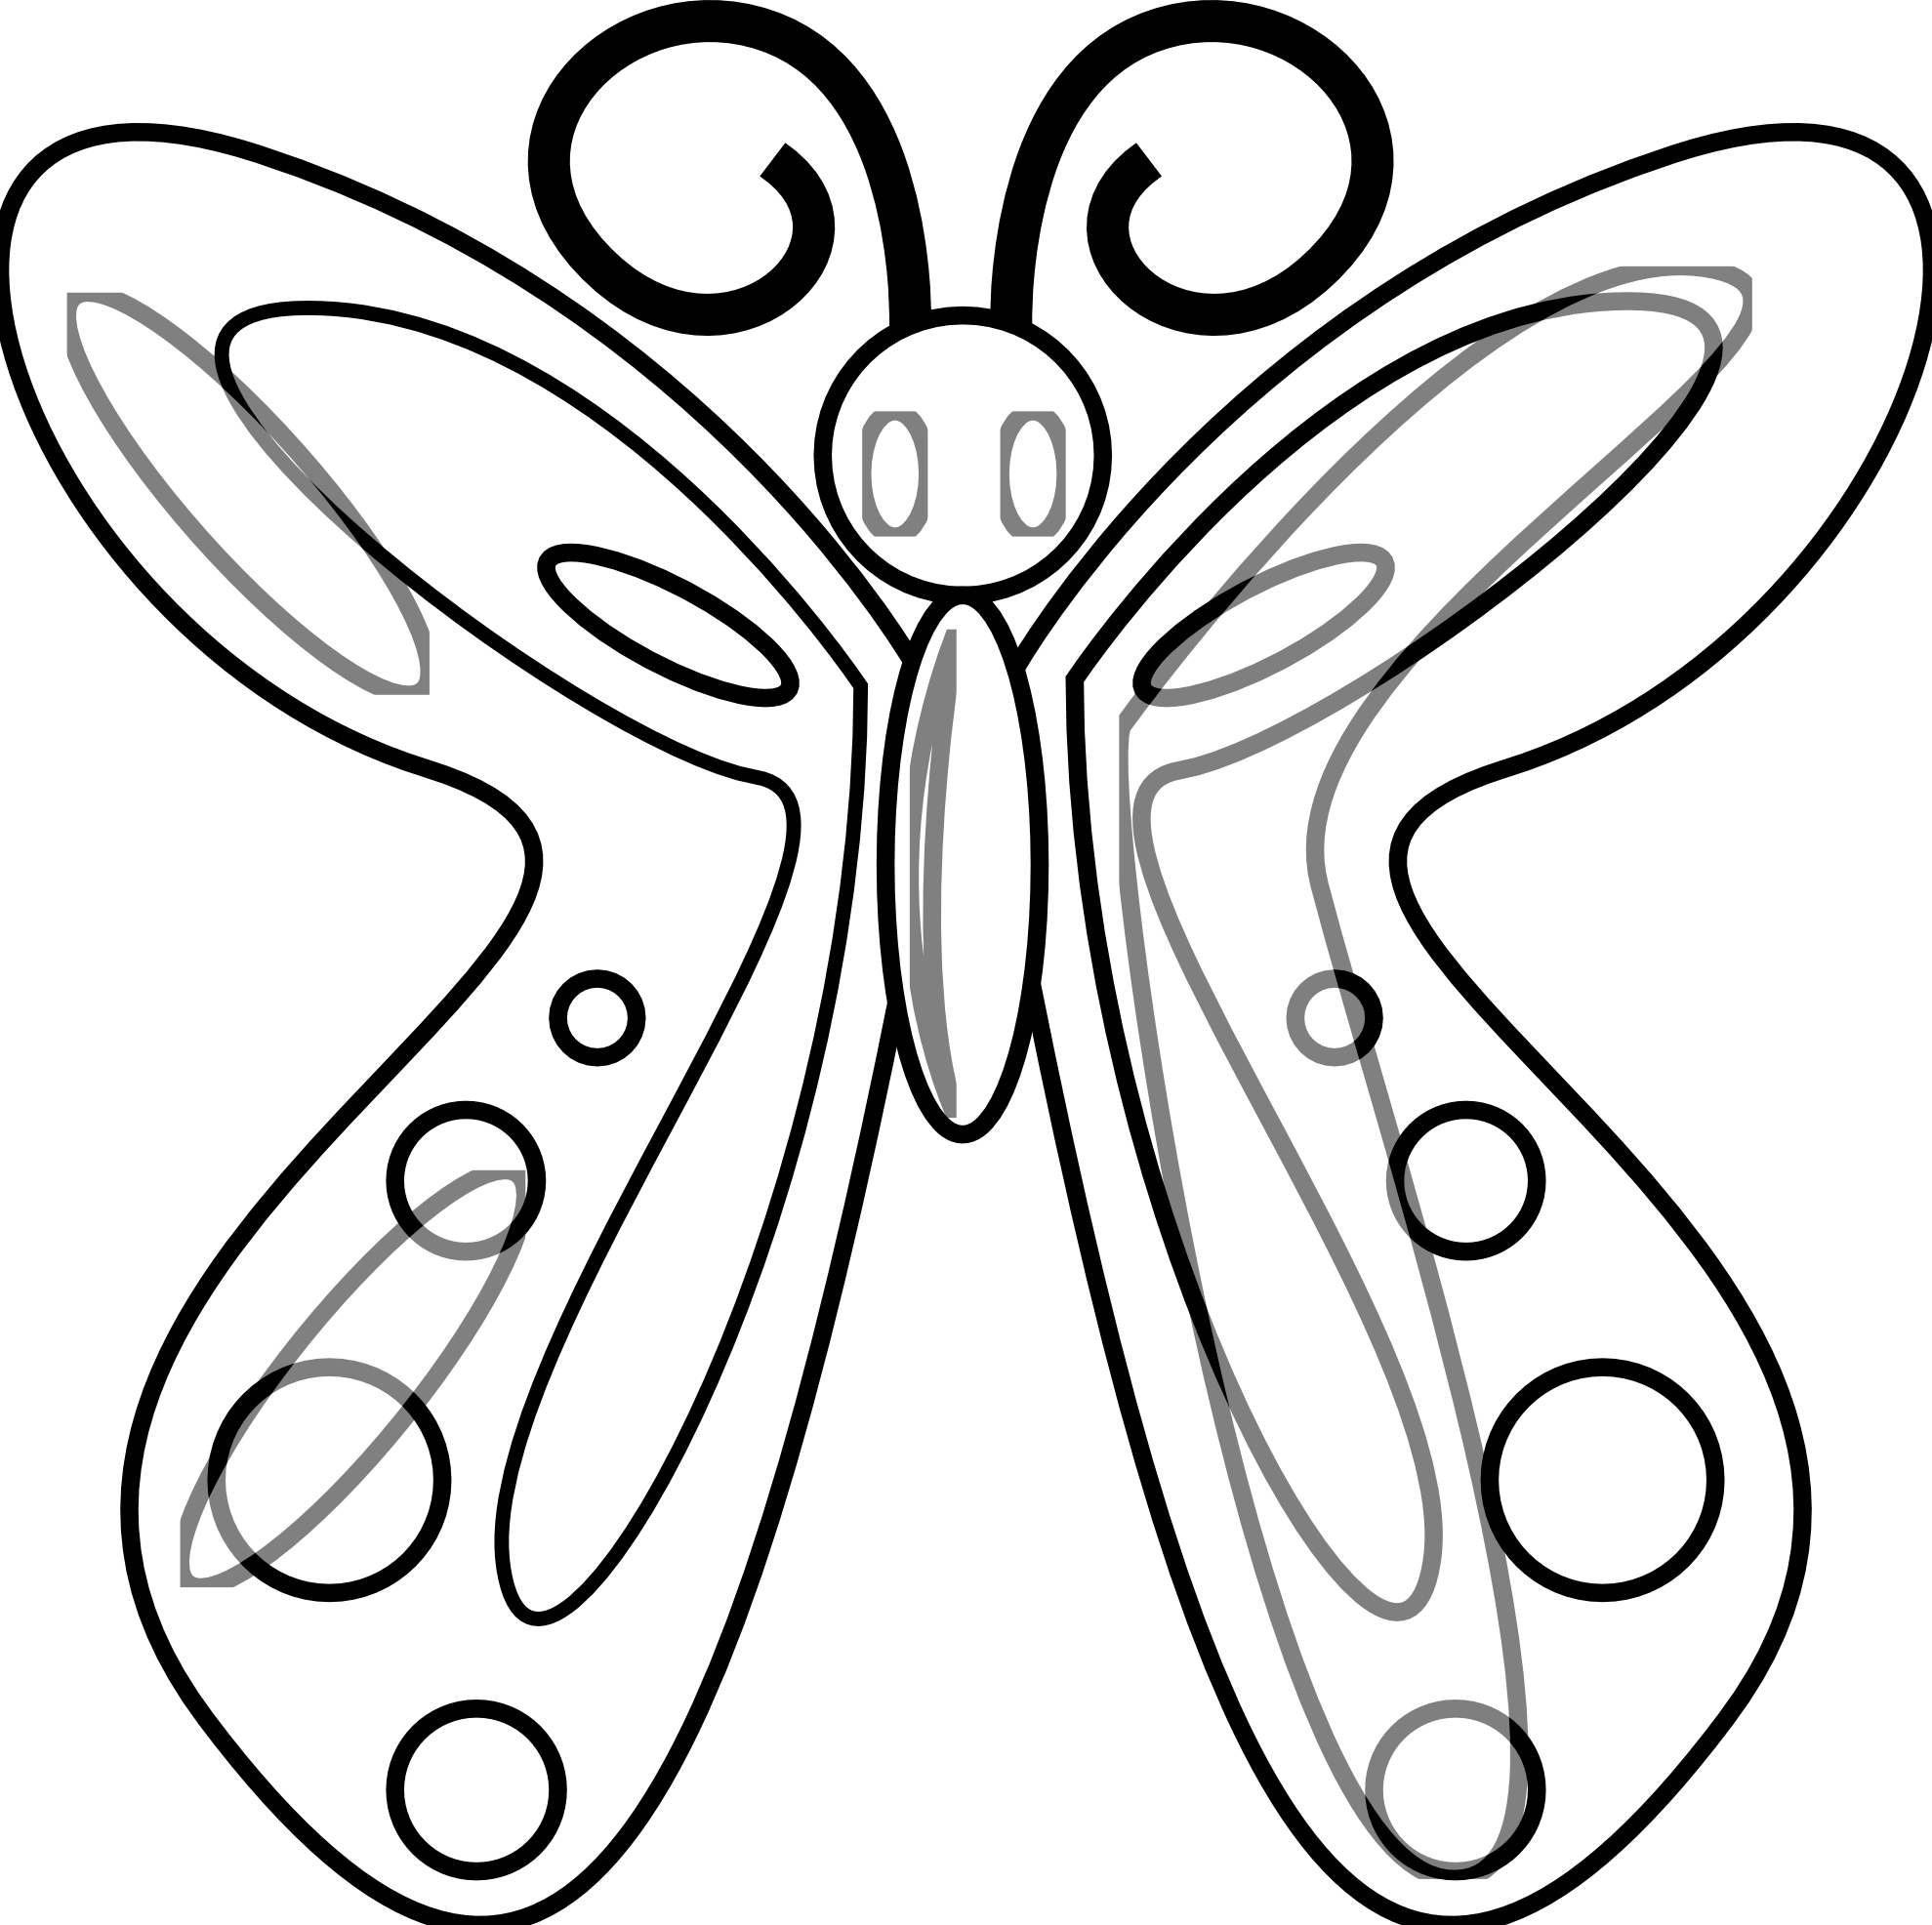 Drawing Lines With Core Graphics : Butterfly net drawing clipart panda free images